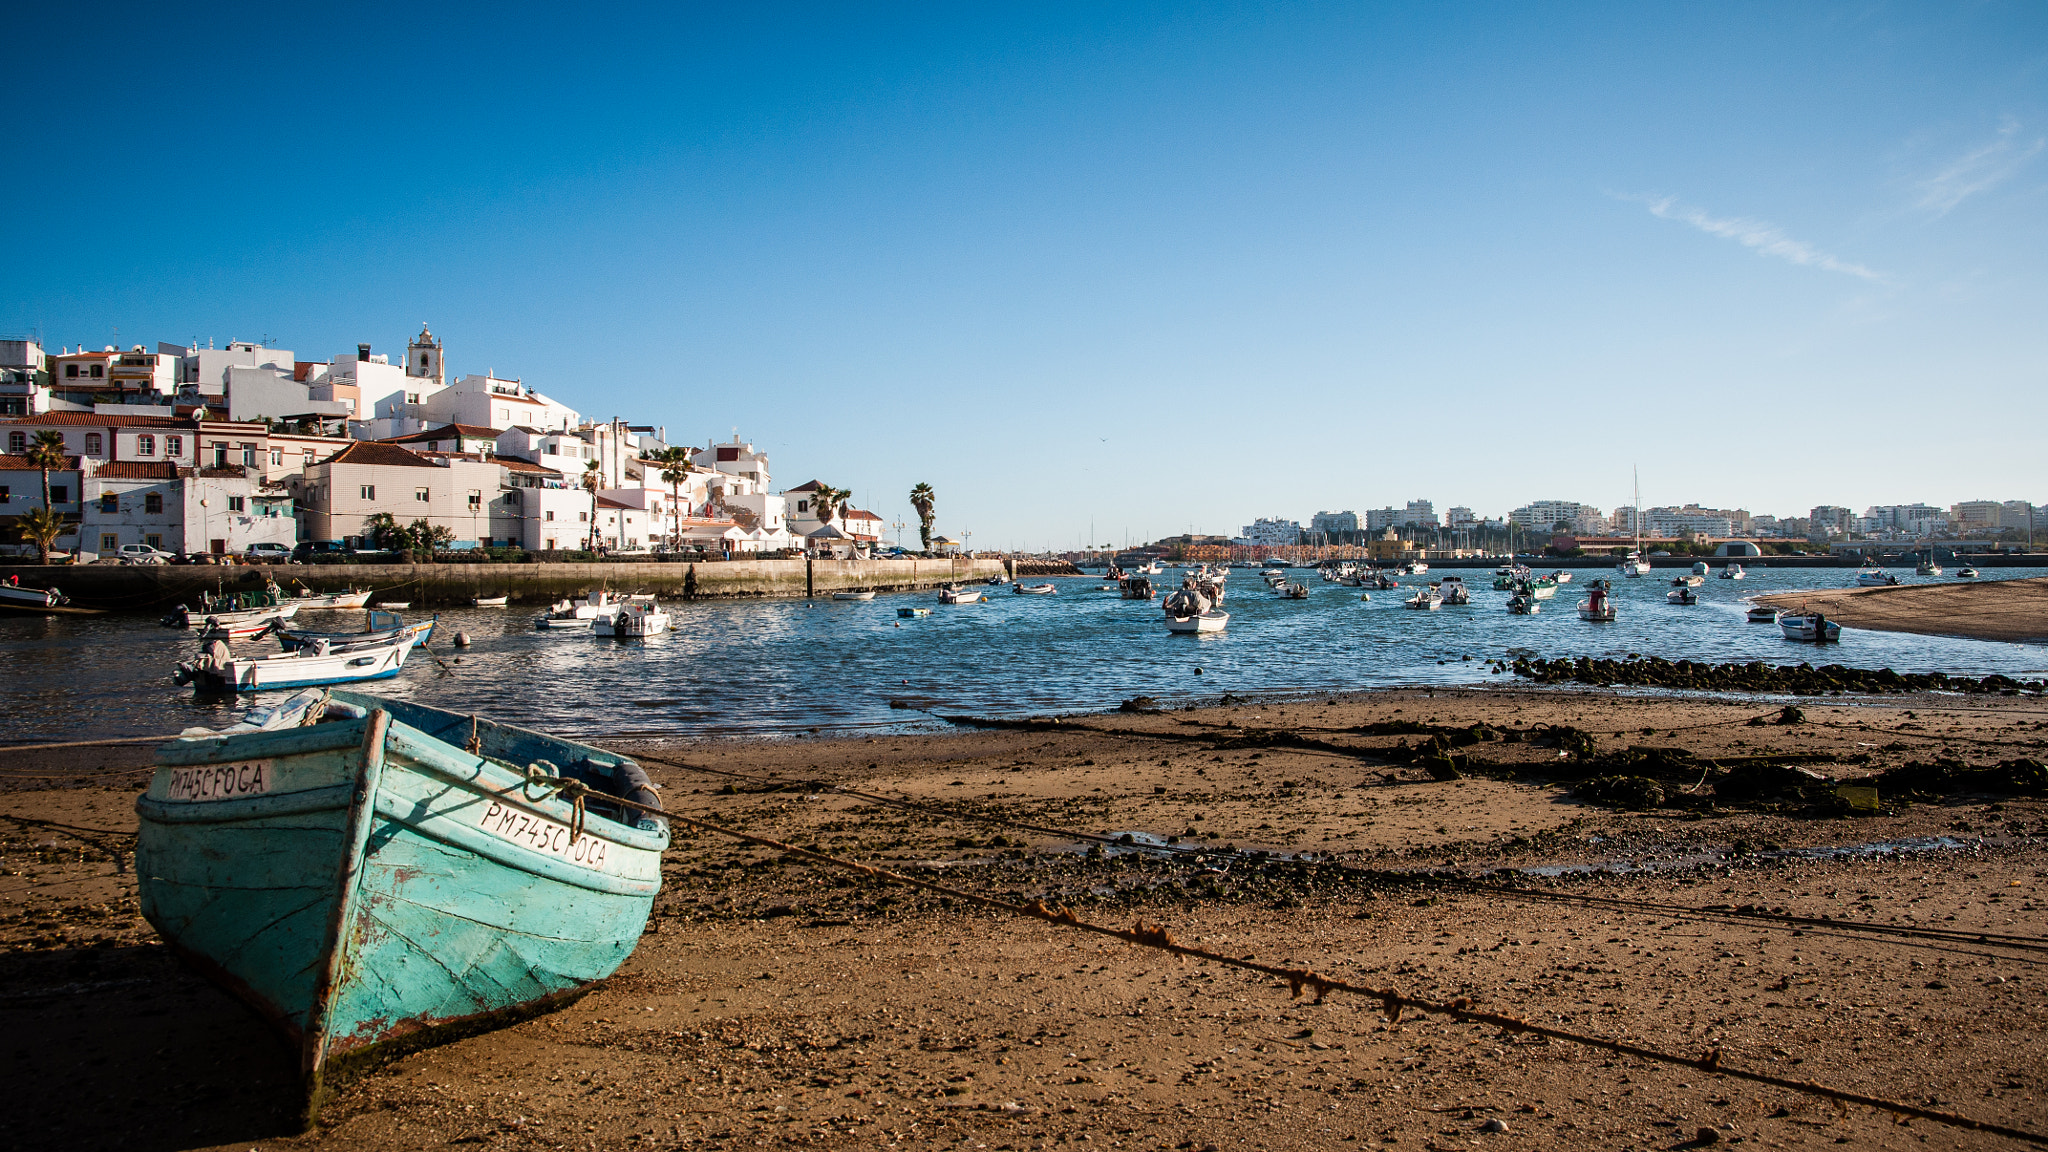 Photograph Ferragudo, Portugal by Jan Riekwel on 500px